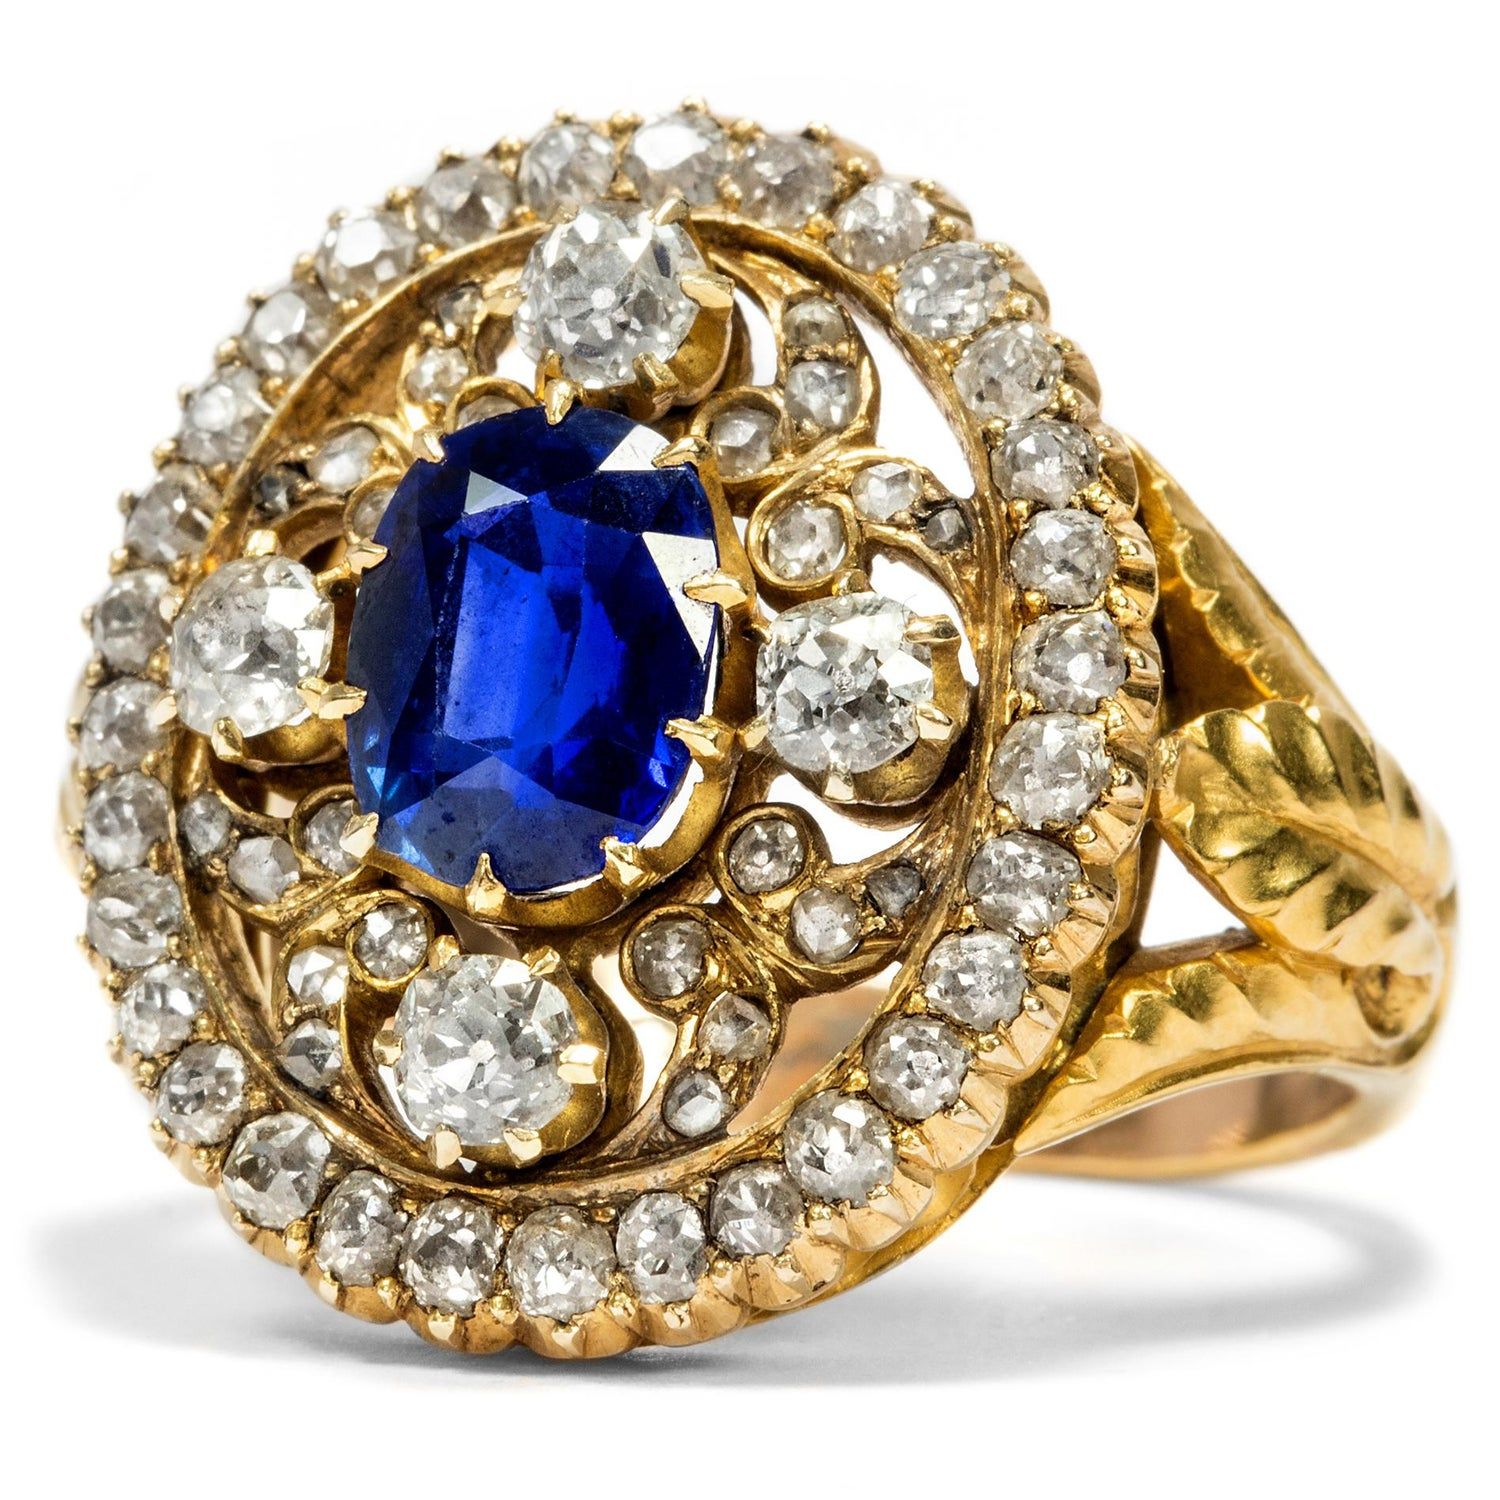 1960s onwards Natural Burmese Sapphire /& natural White Sapphire solitaire ring in gold